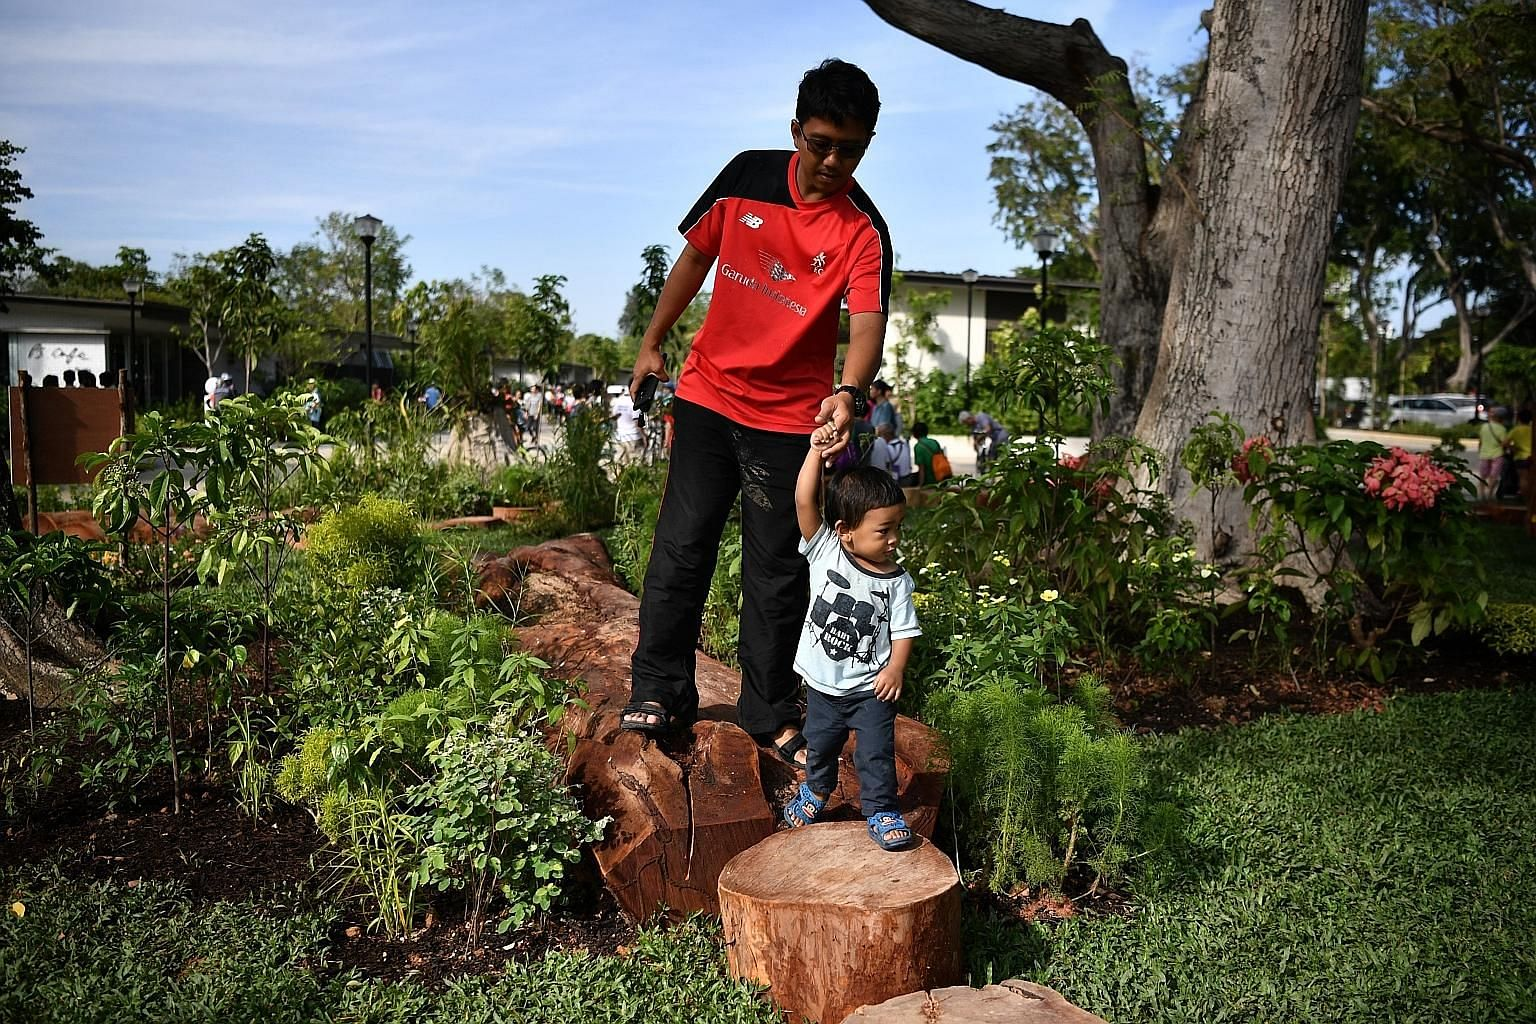 Mr Ahmad Abdillah and his 1½-year-old son Ahmad Khairi at the nature play garden yesterday. In order to provide natural shade and vibrancy, 800 trees have been planted at the new Cyclist Park.